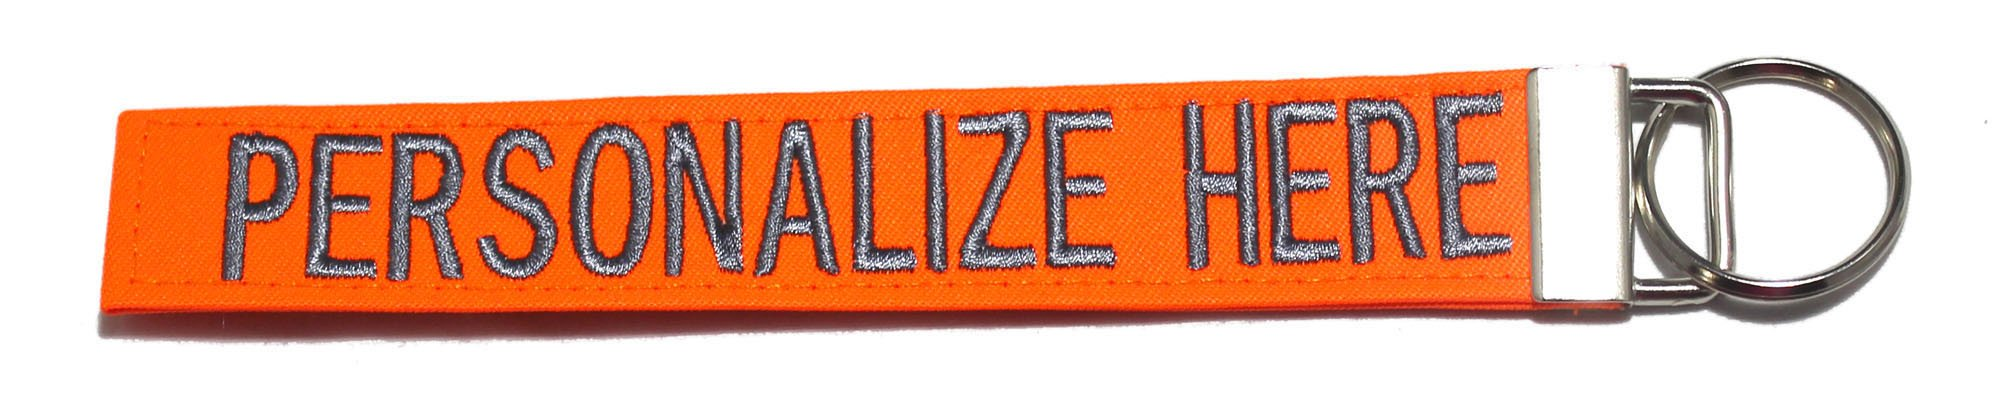 Northern Safari Personalized Military Name Tapes Logo Key Chain/LUGGAGE and/or CRATE tags, Neon Orange, 6'' Logo Keychain by Northern Safari